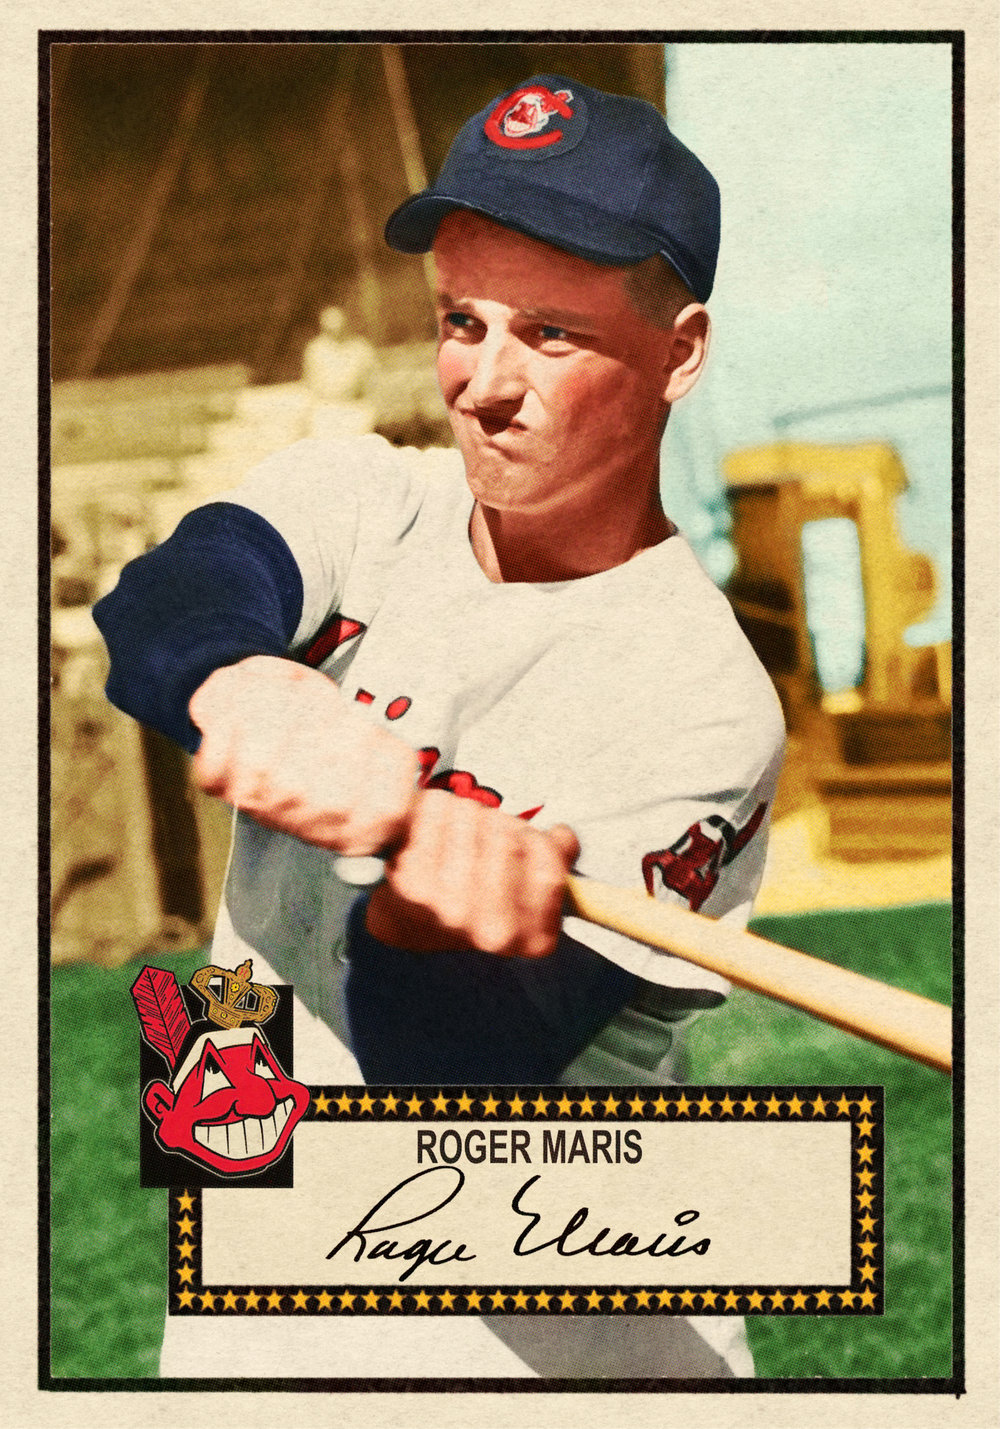 1952 BANTY RED BASEBALL STARS SERIES #152 ROGER MARIS - 1/20/17 Auction Closes at 181.49 USD - Current Population of 1